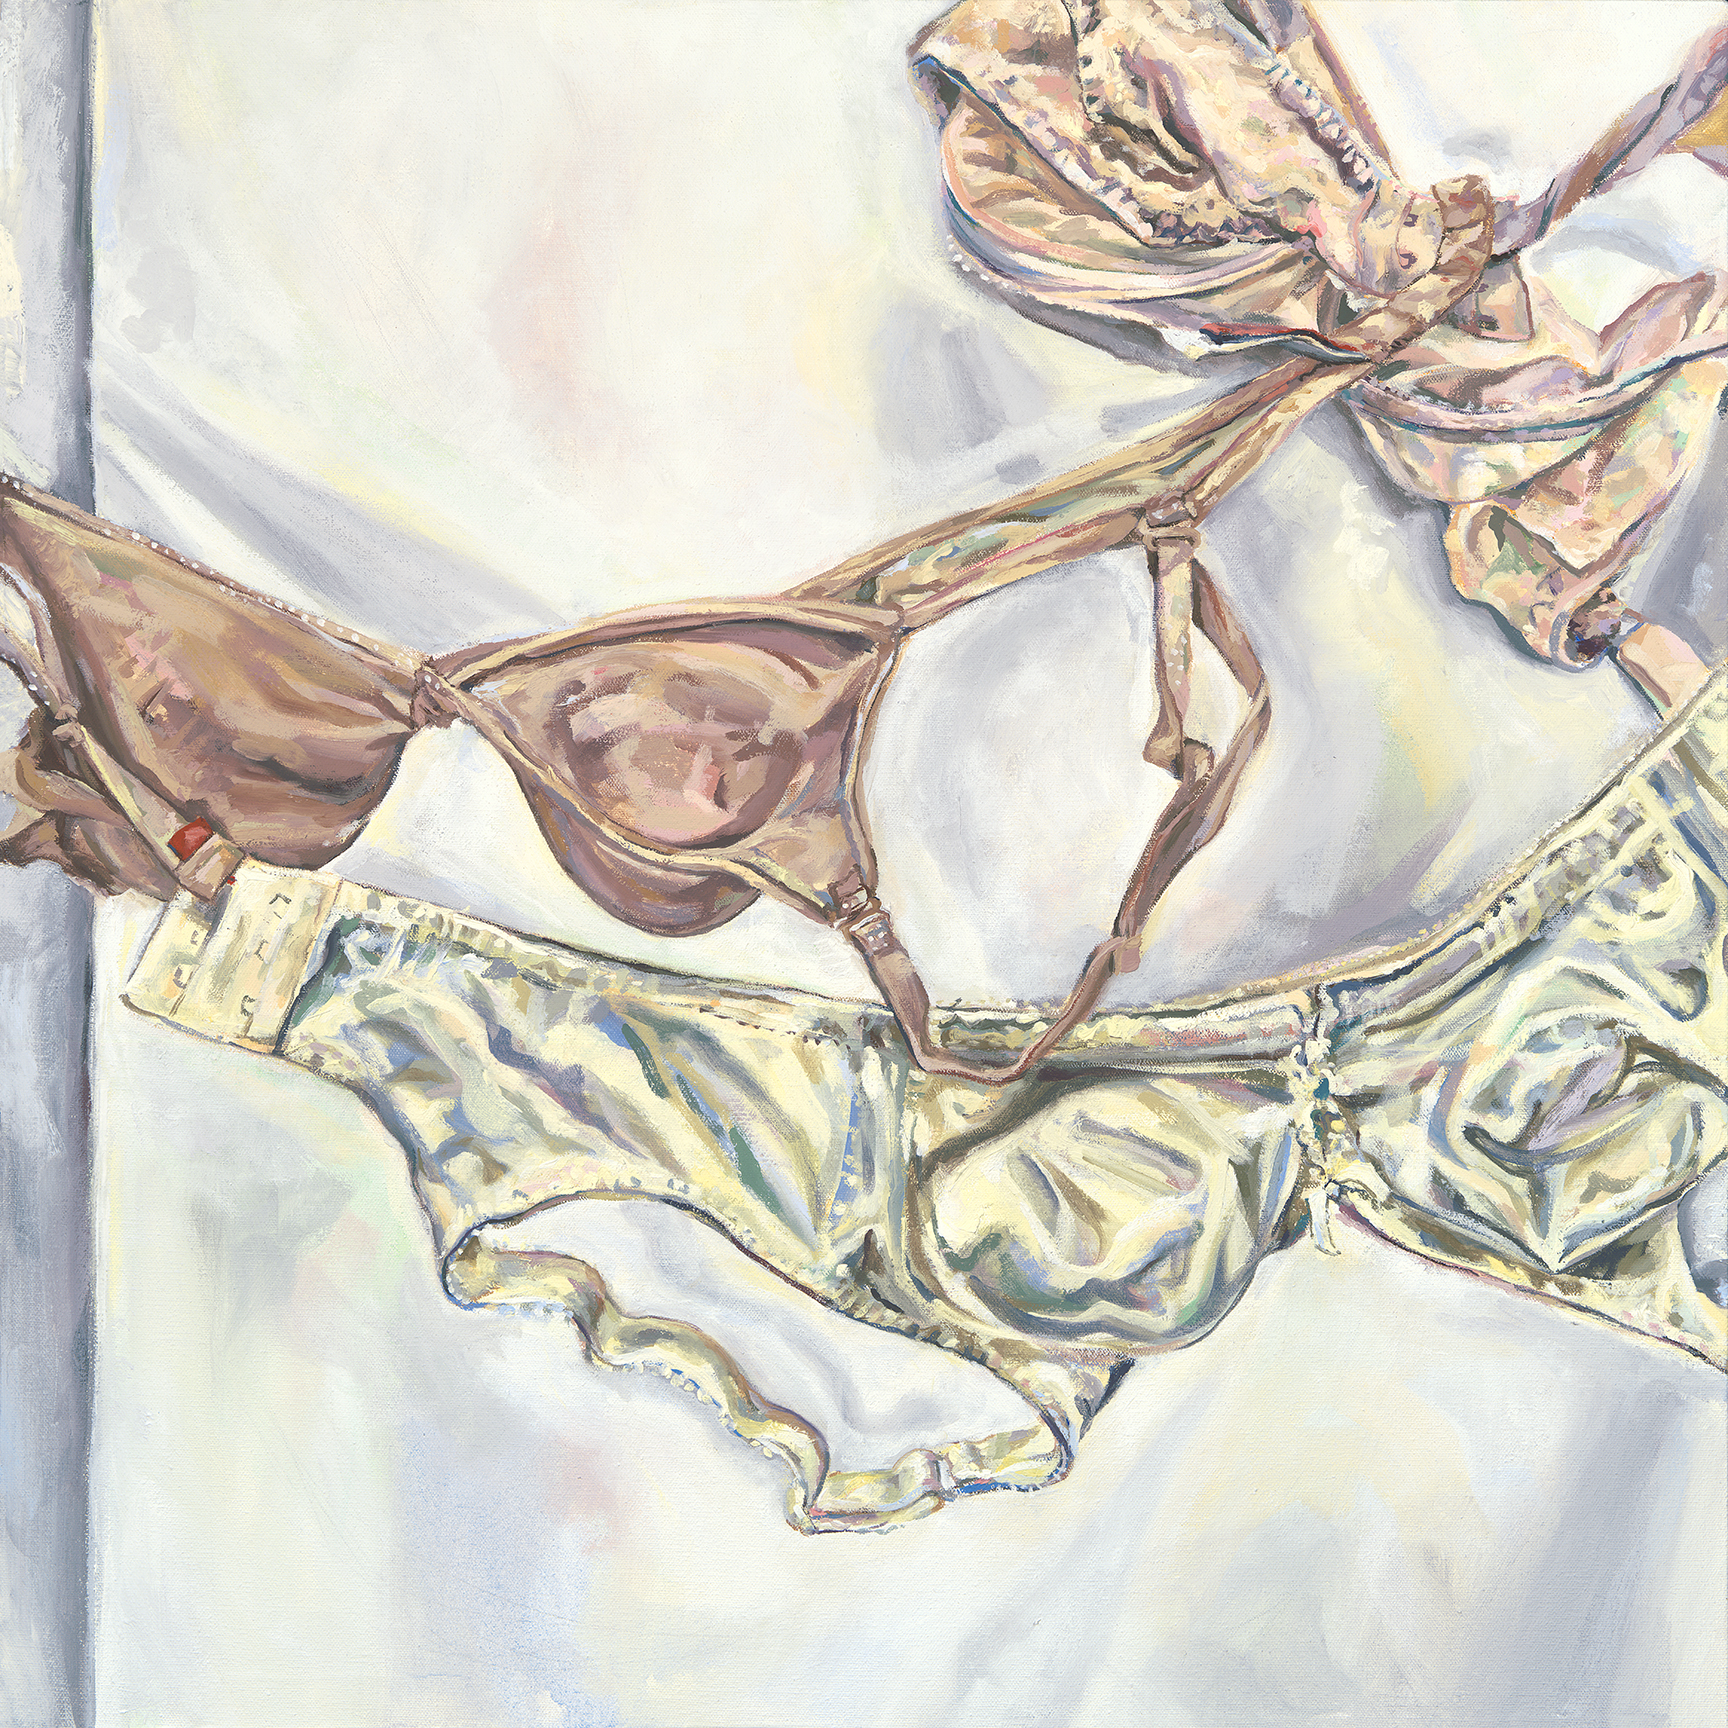 Matrilineal, painting of three bras by Claire Brandt